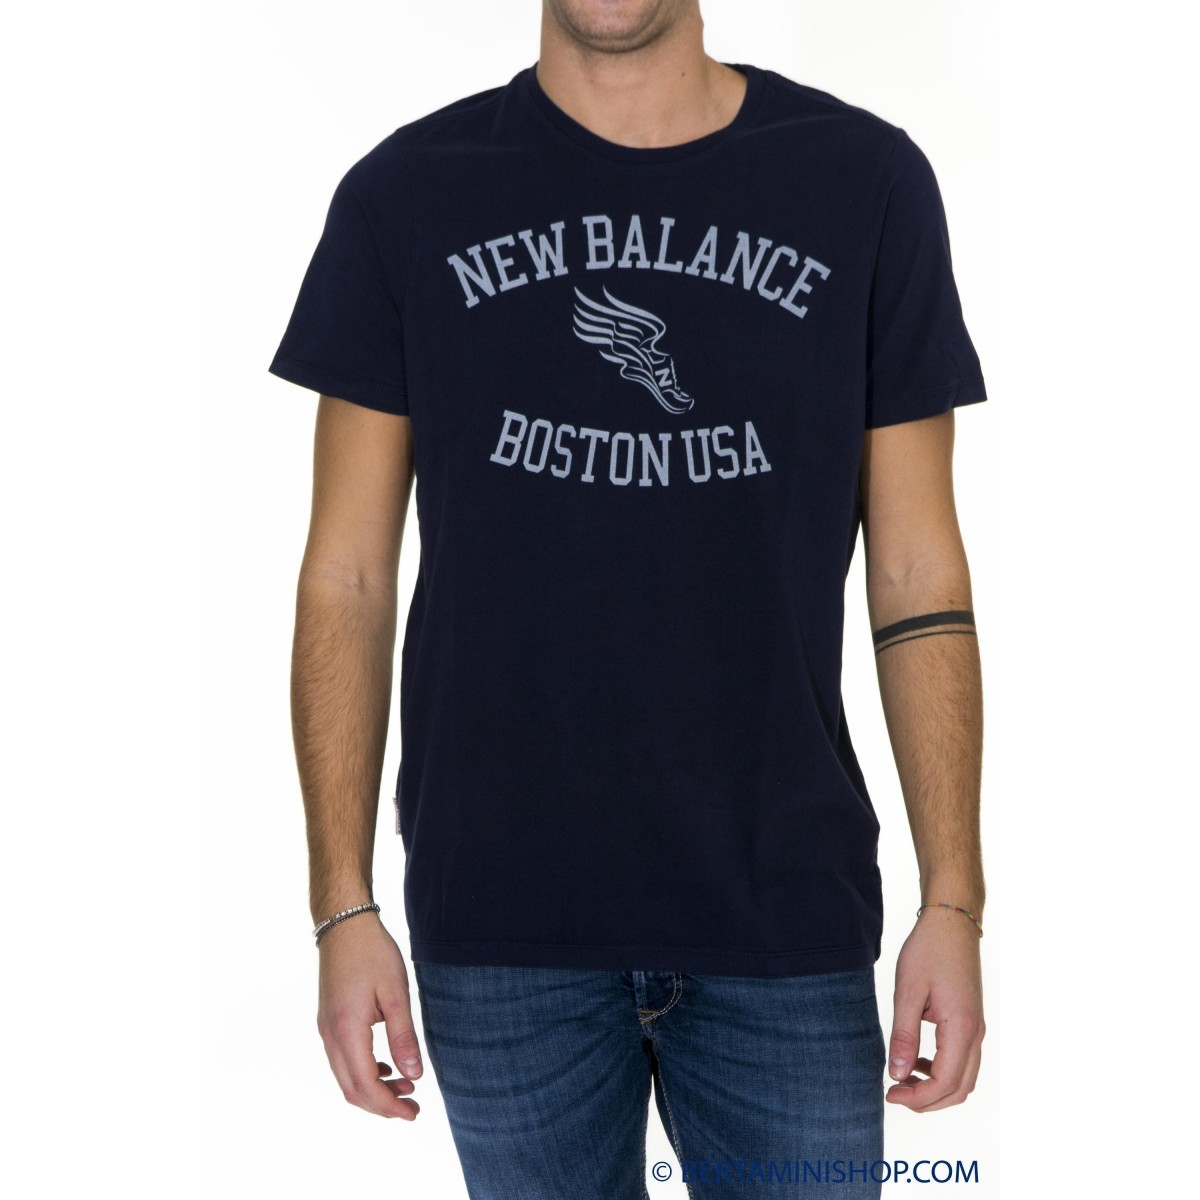 T-Shirt New Balance Man - 16S105 T-Shirt 70 - Blue